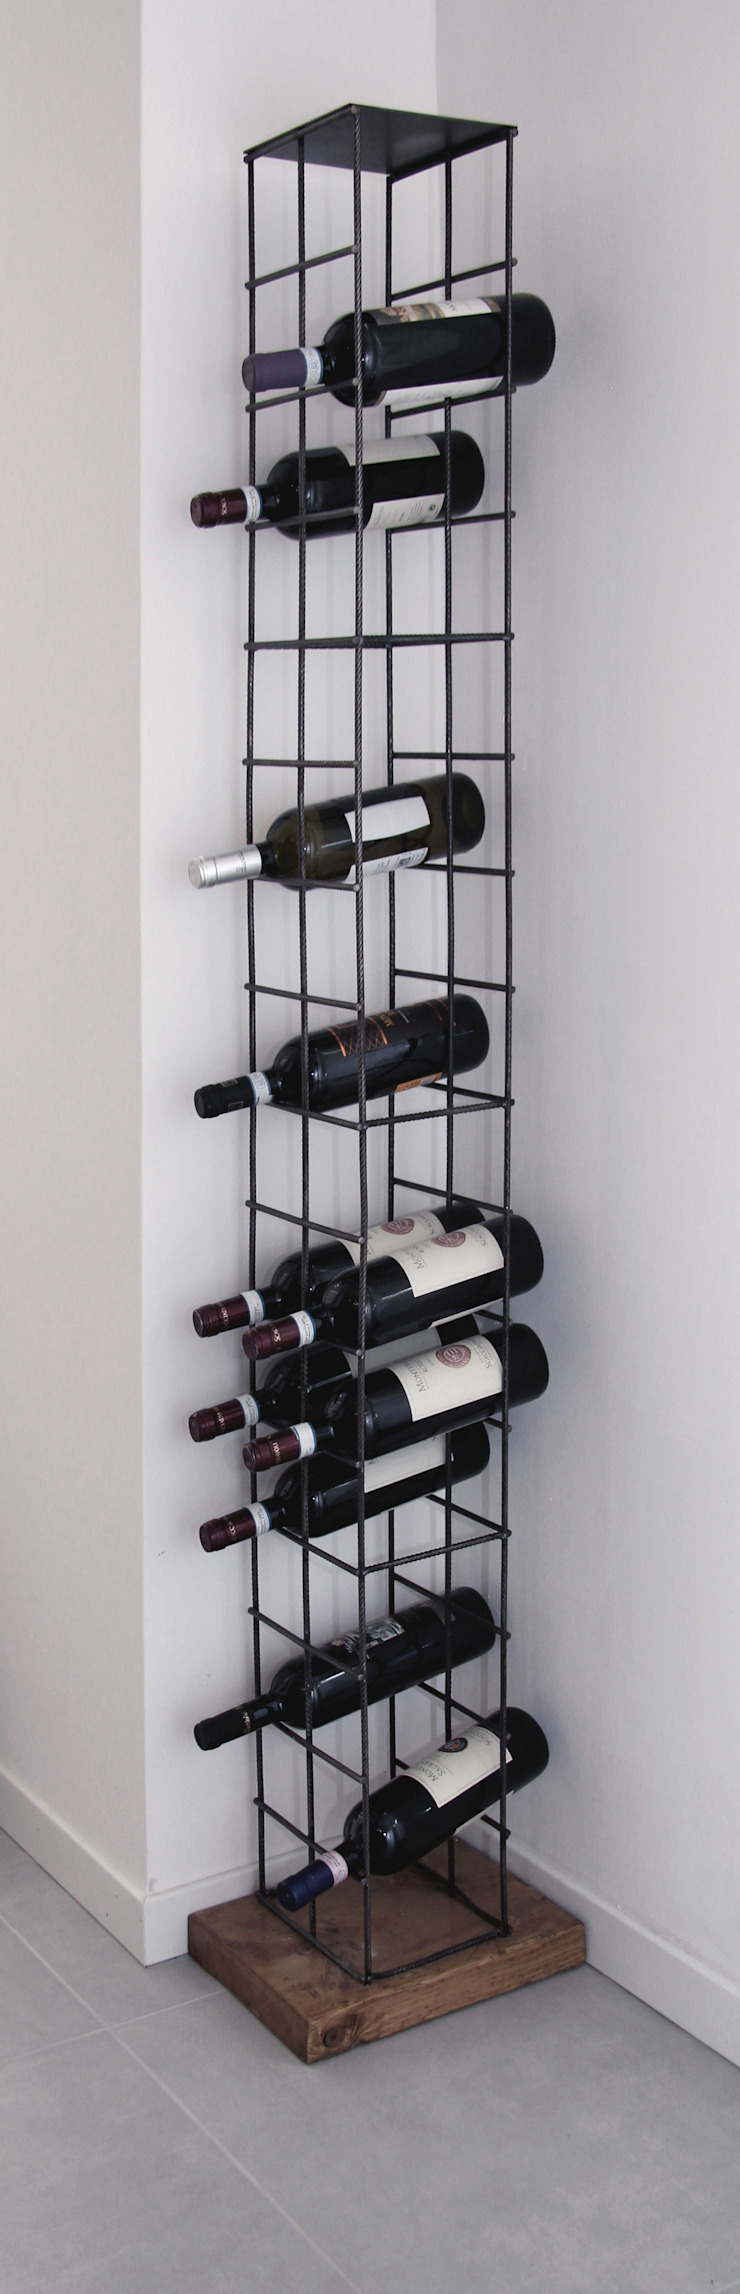 CHIARA MARCHIONNI ARCHITECT Wine cellar Iron/Steel Black